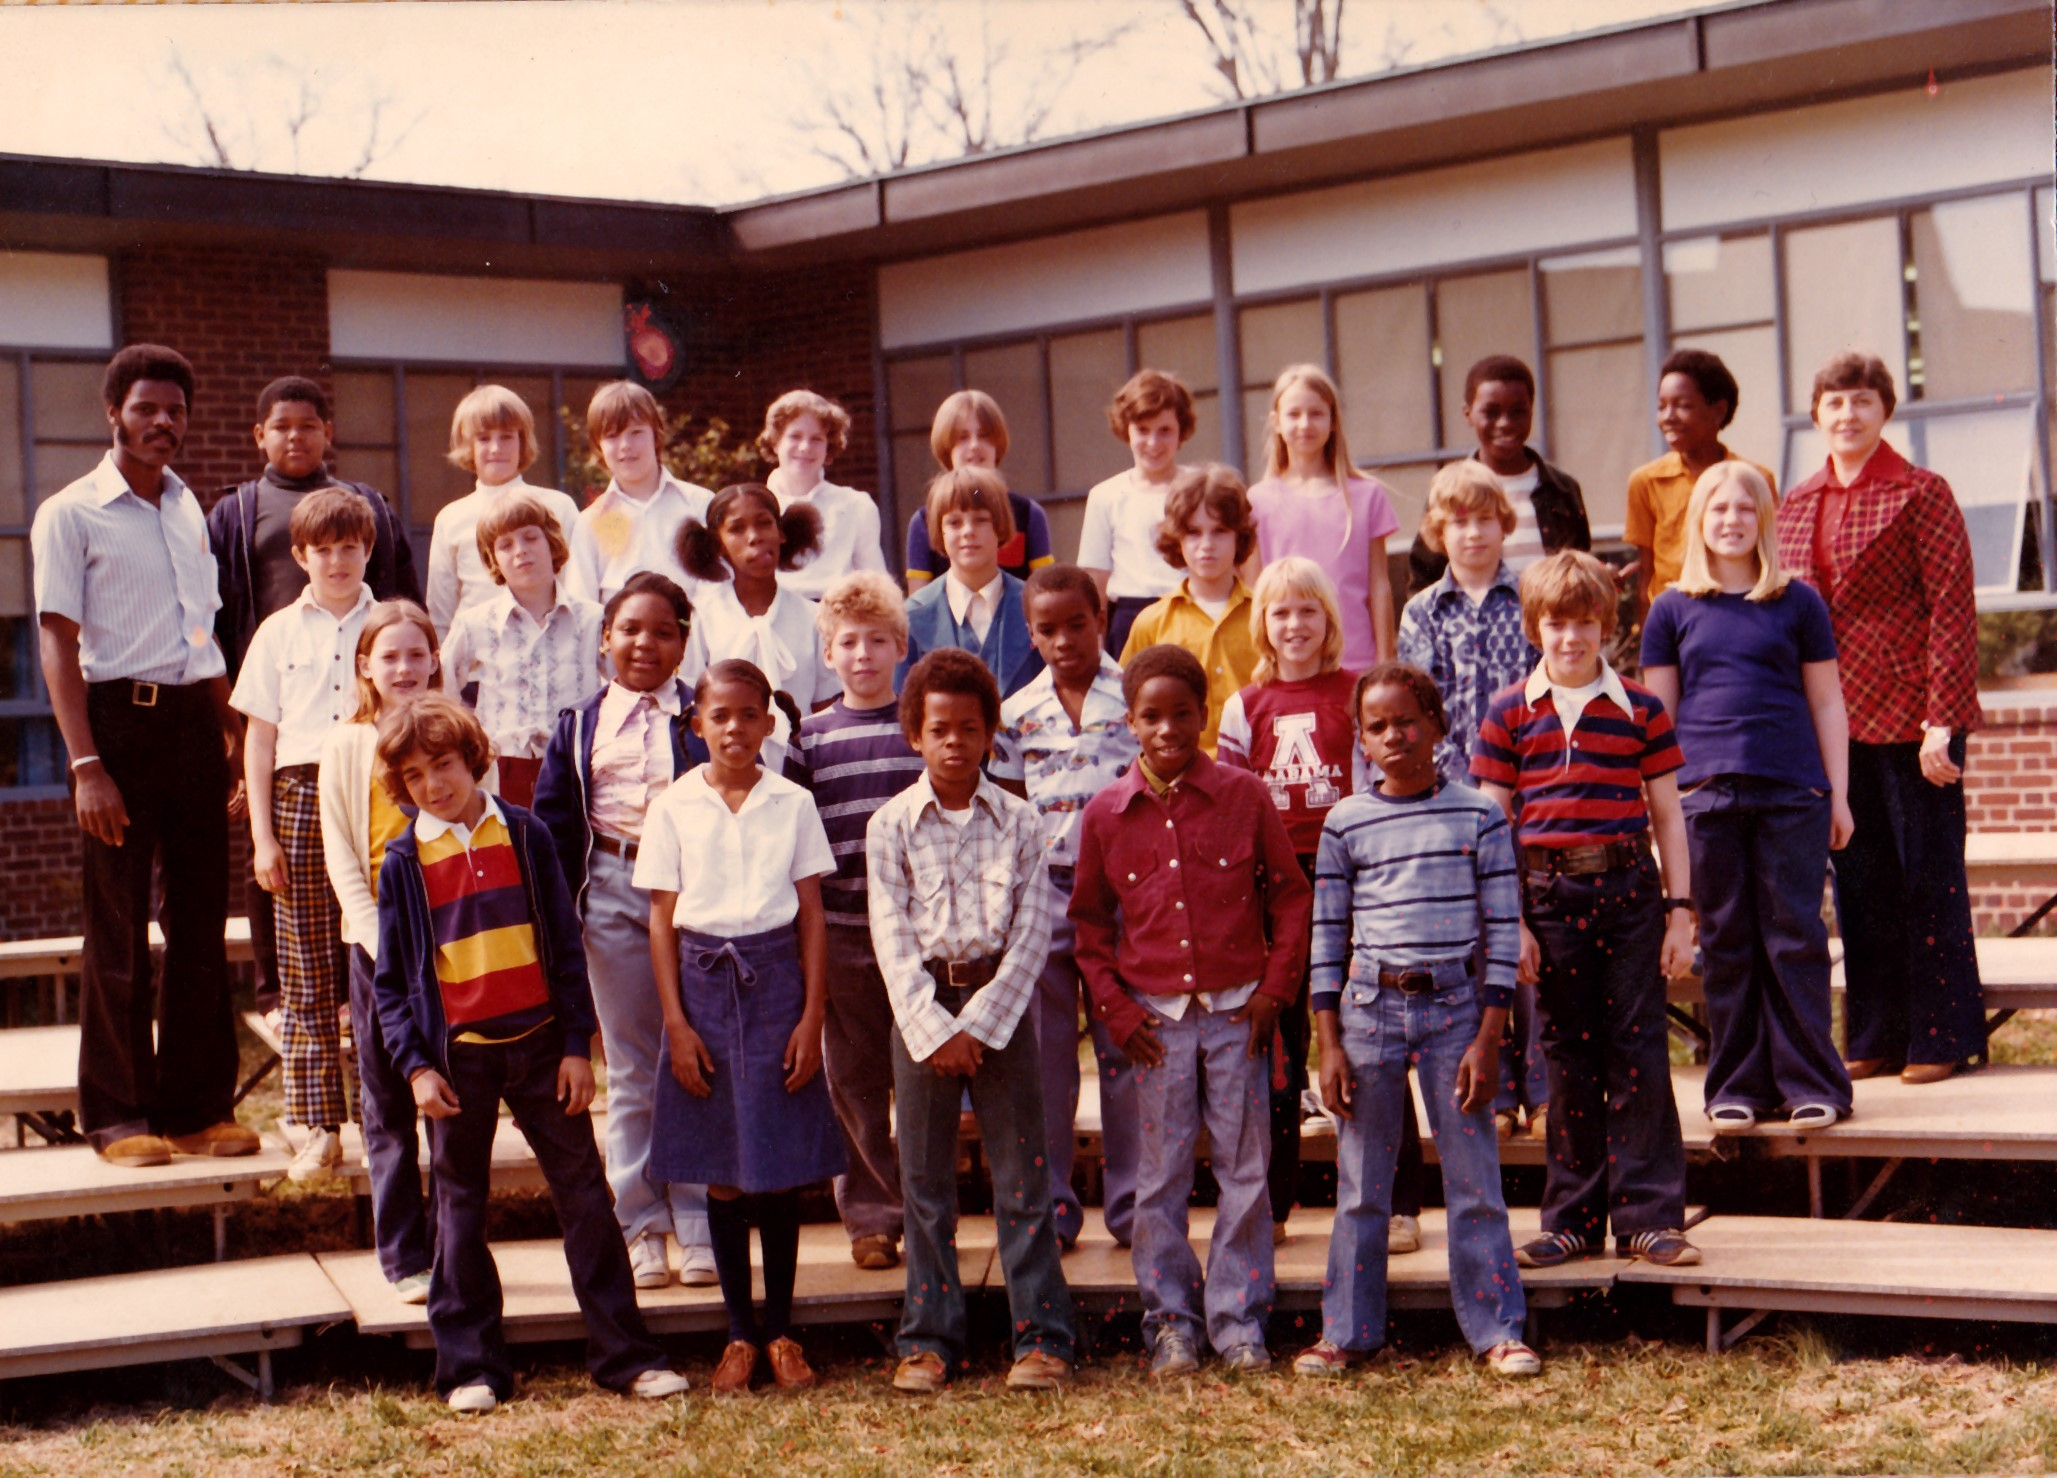 1970s 5th grade class photo from Hillsmere Elementary school